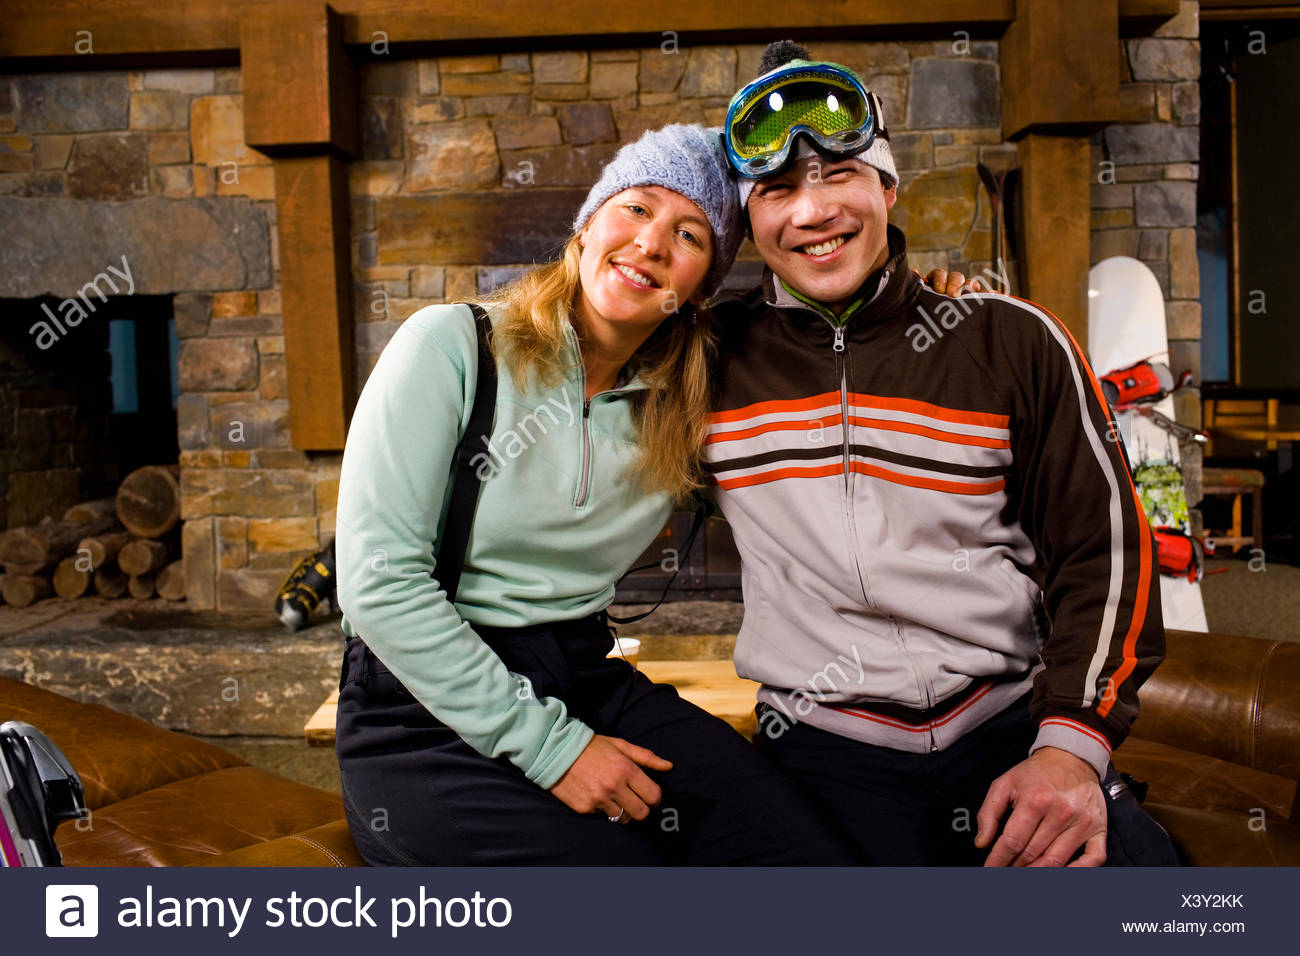 USA, Montana, Whitefish, Portrait of couple in front of fireplace - Stock Image